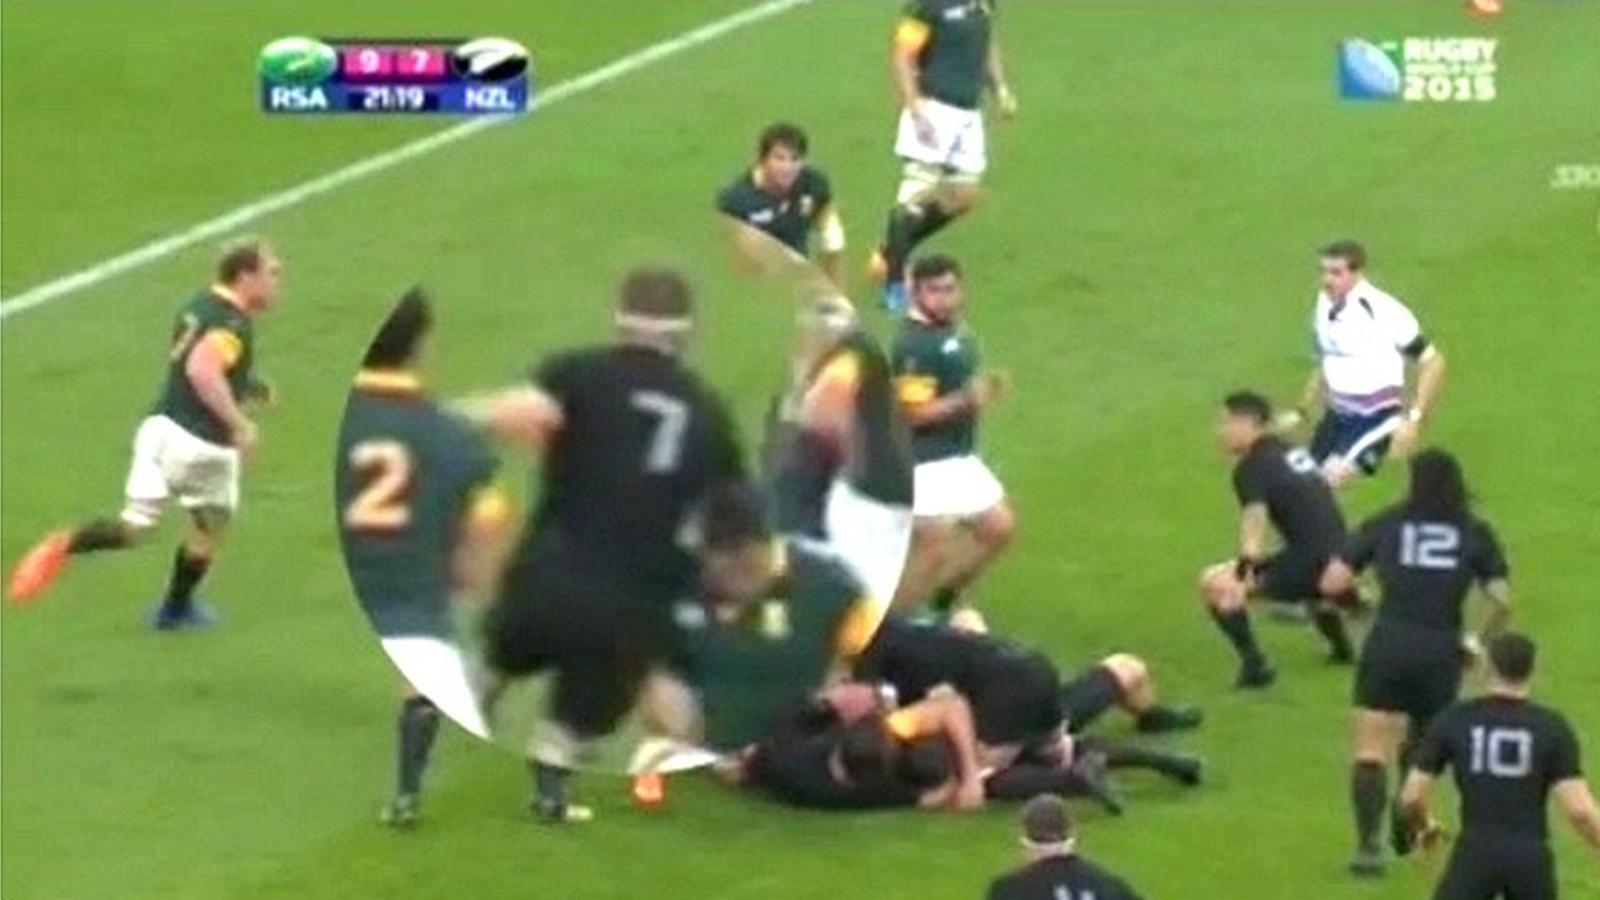 World Cup Daily Could This Image Rule Richie Mccaw Out Of World Cup